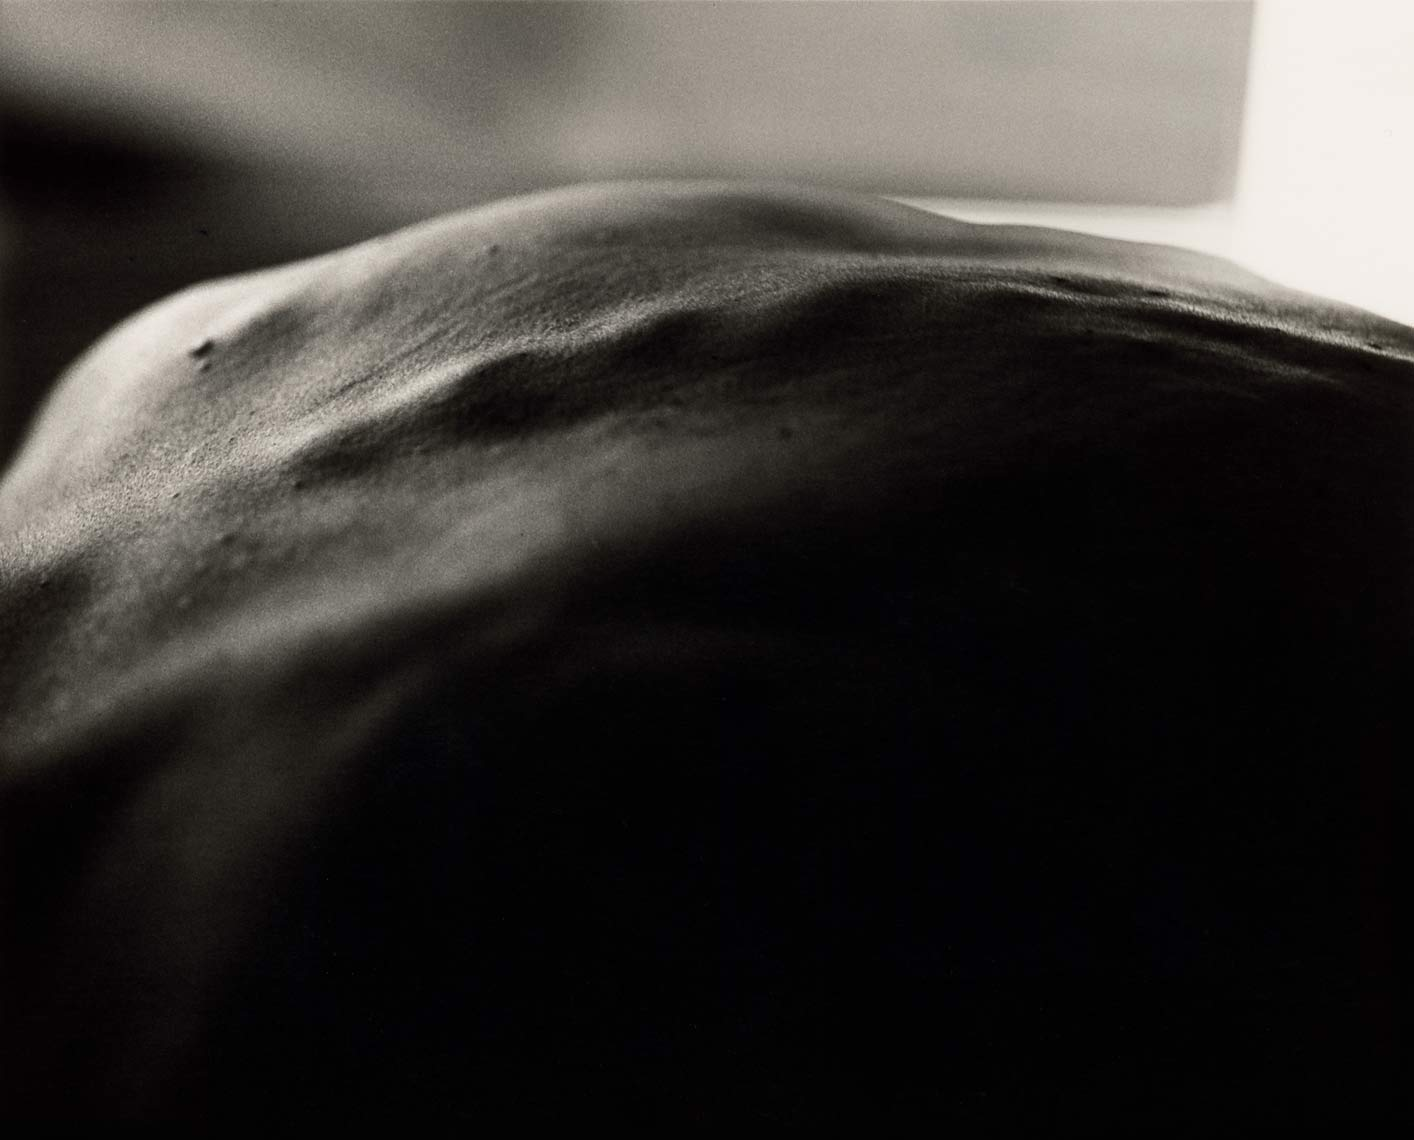 David Lebe; Morning Ritual 16, 1994, black and white photograph about living with AIDS